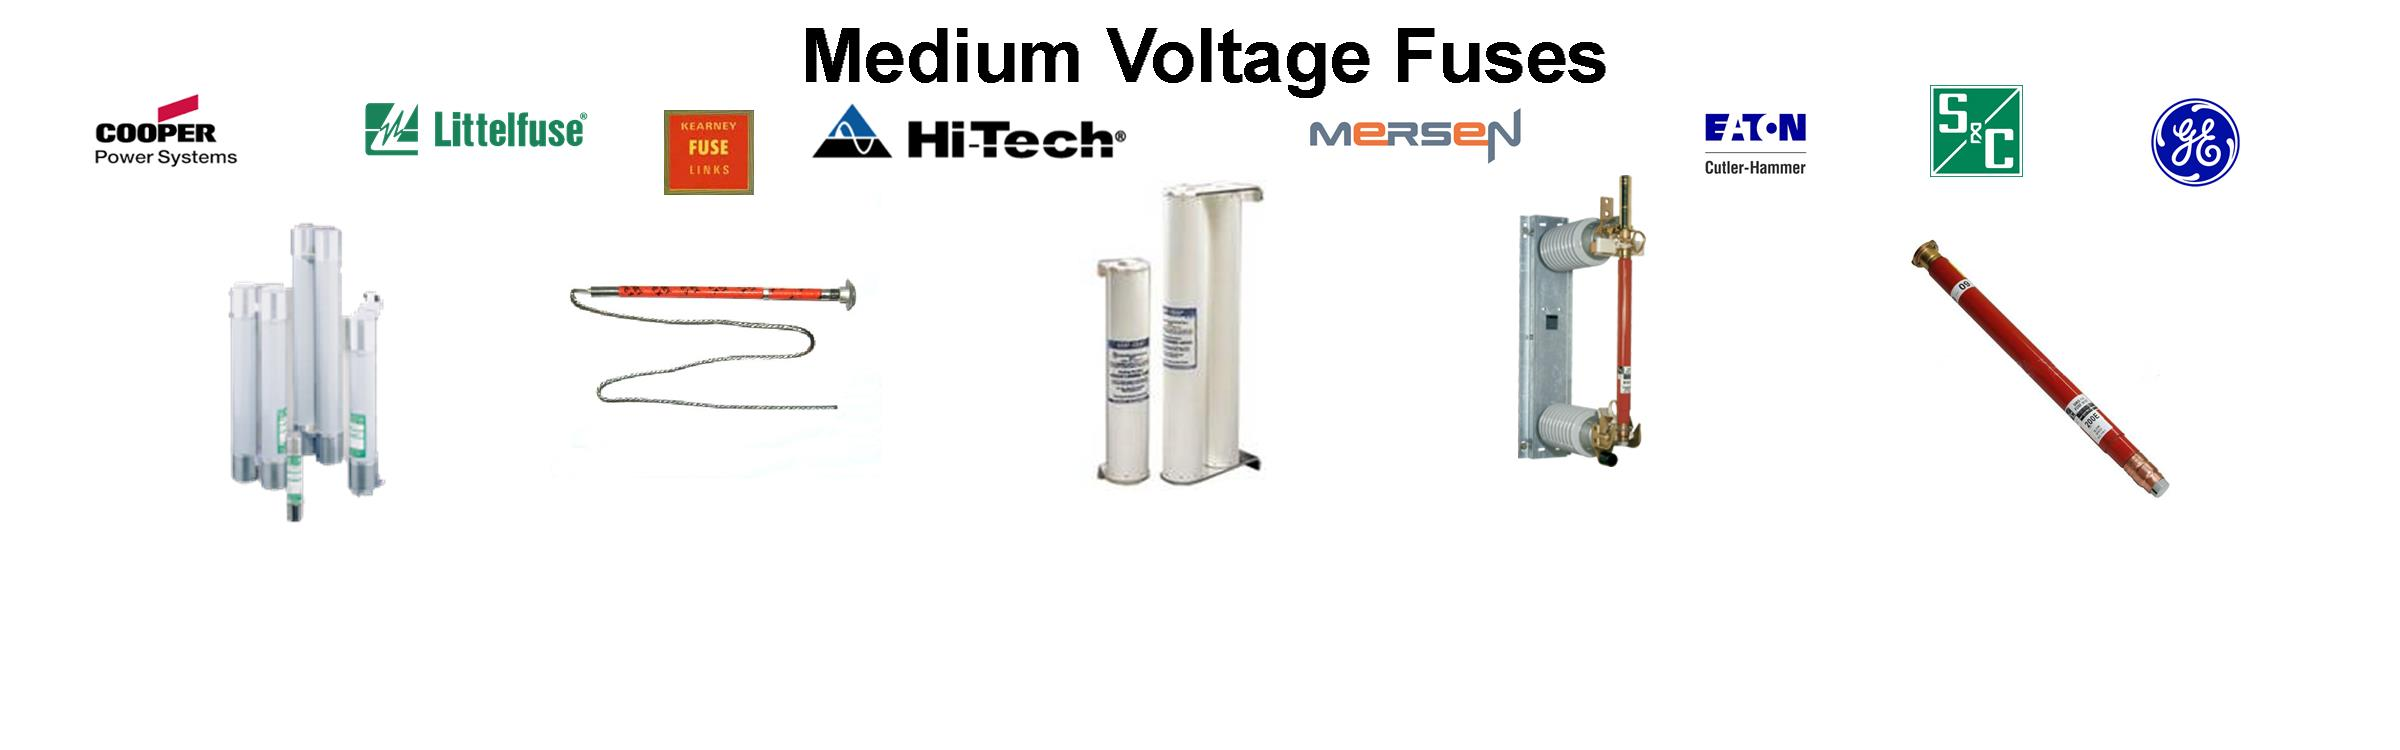 Medium-Voltage-Fuses-Banner---Website1.jpg